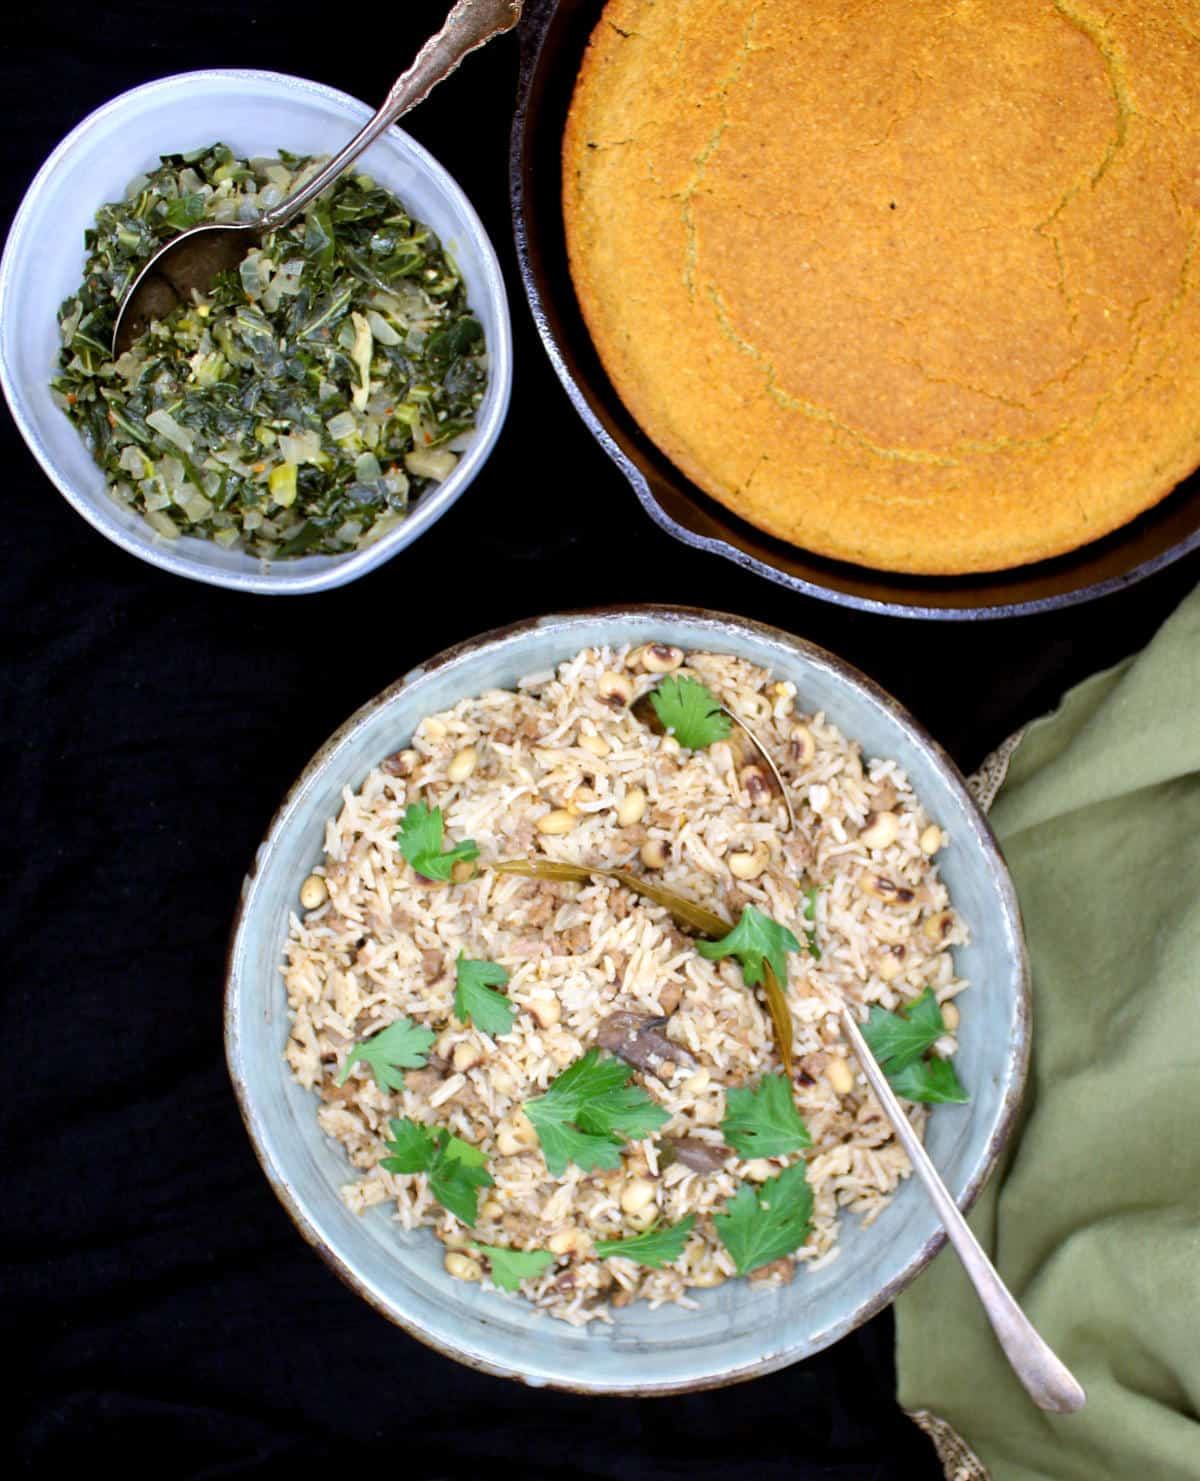 Vegan corn bread in a cast iron skillet, with collard greens and hoppin' John in bowls.